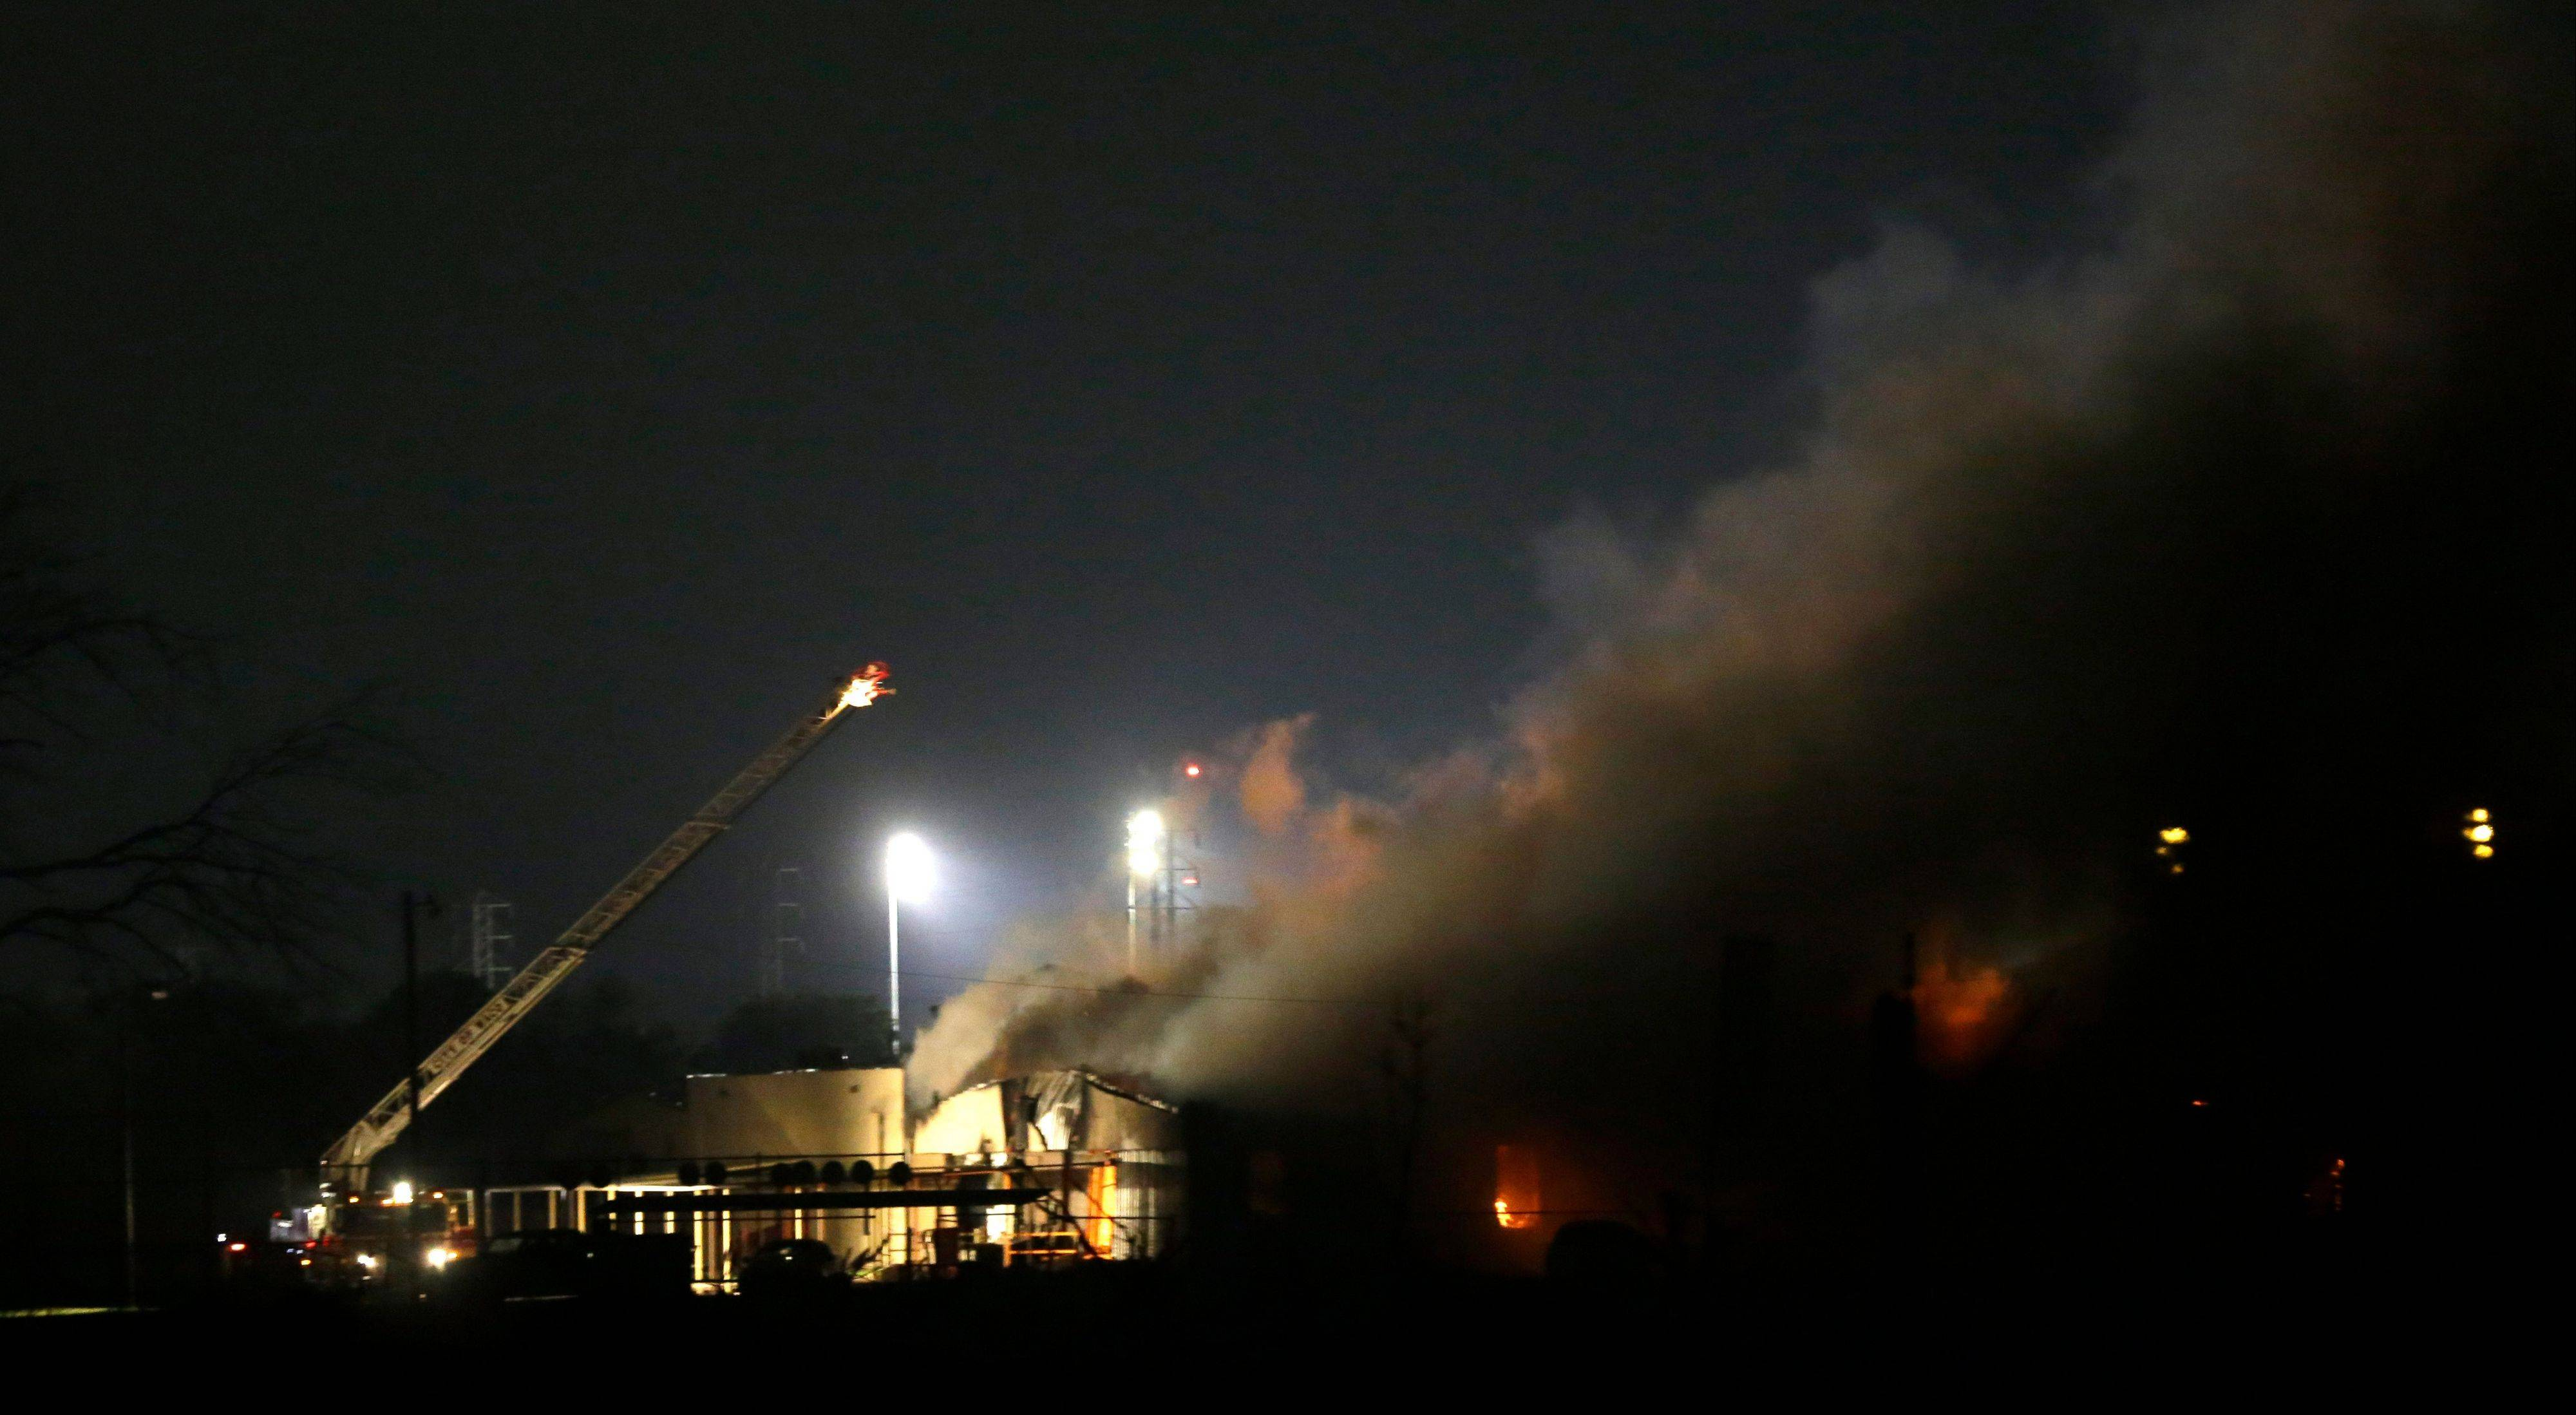 Four weeks after the explosion at a Texas fertilizer plant, investigators have yet to announce what prompted the fire and touched off the massive explosion that killed 14 people.